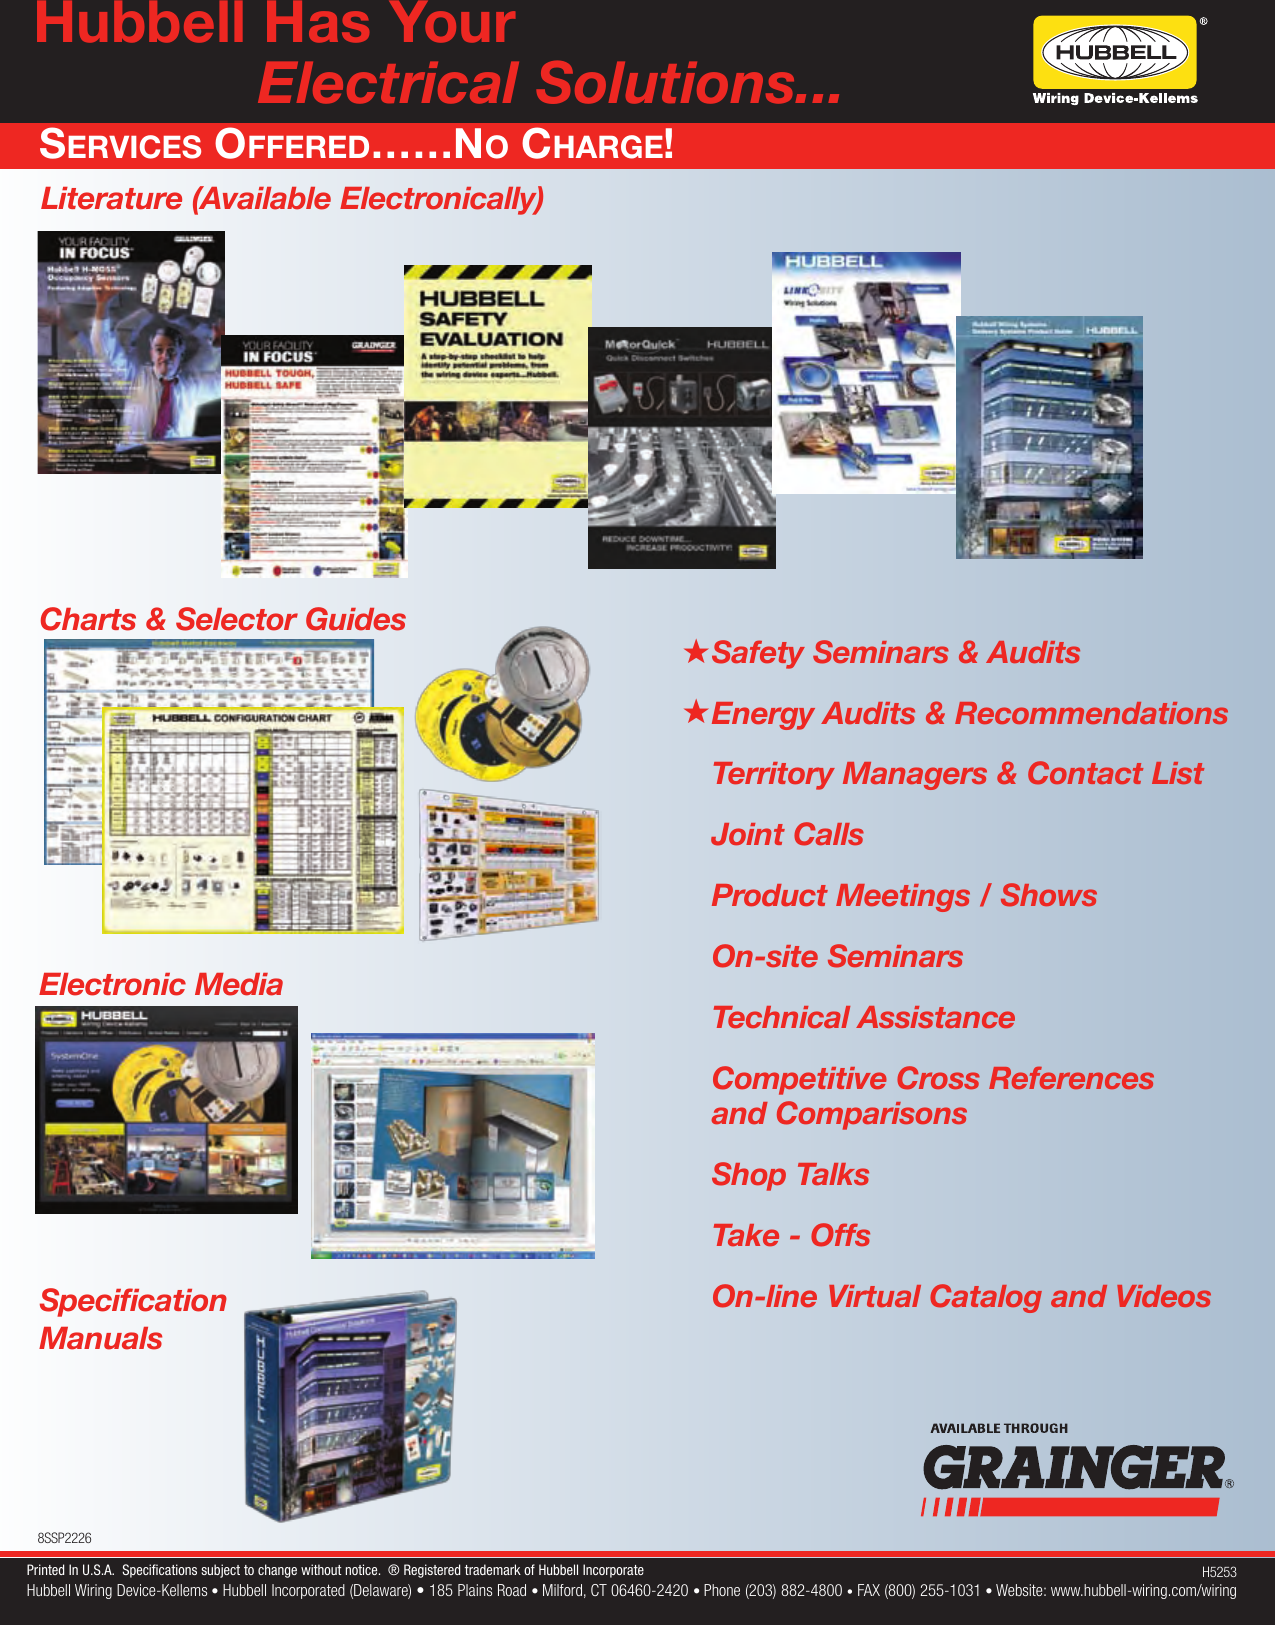 Hubbell Industrial MRO Electrical Products